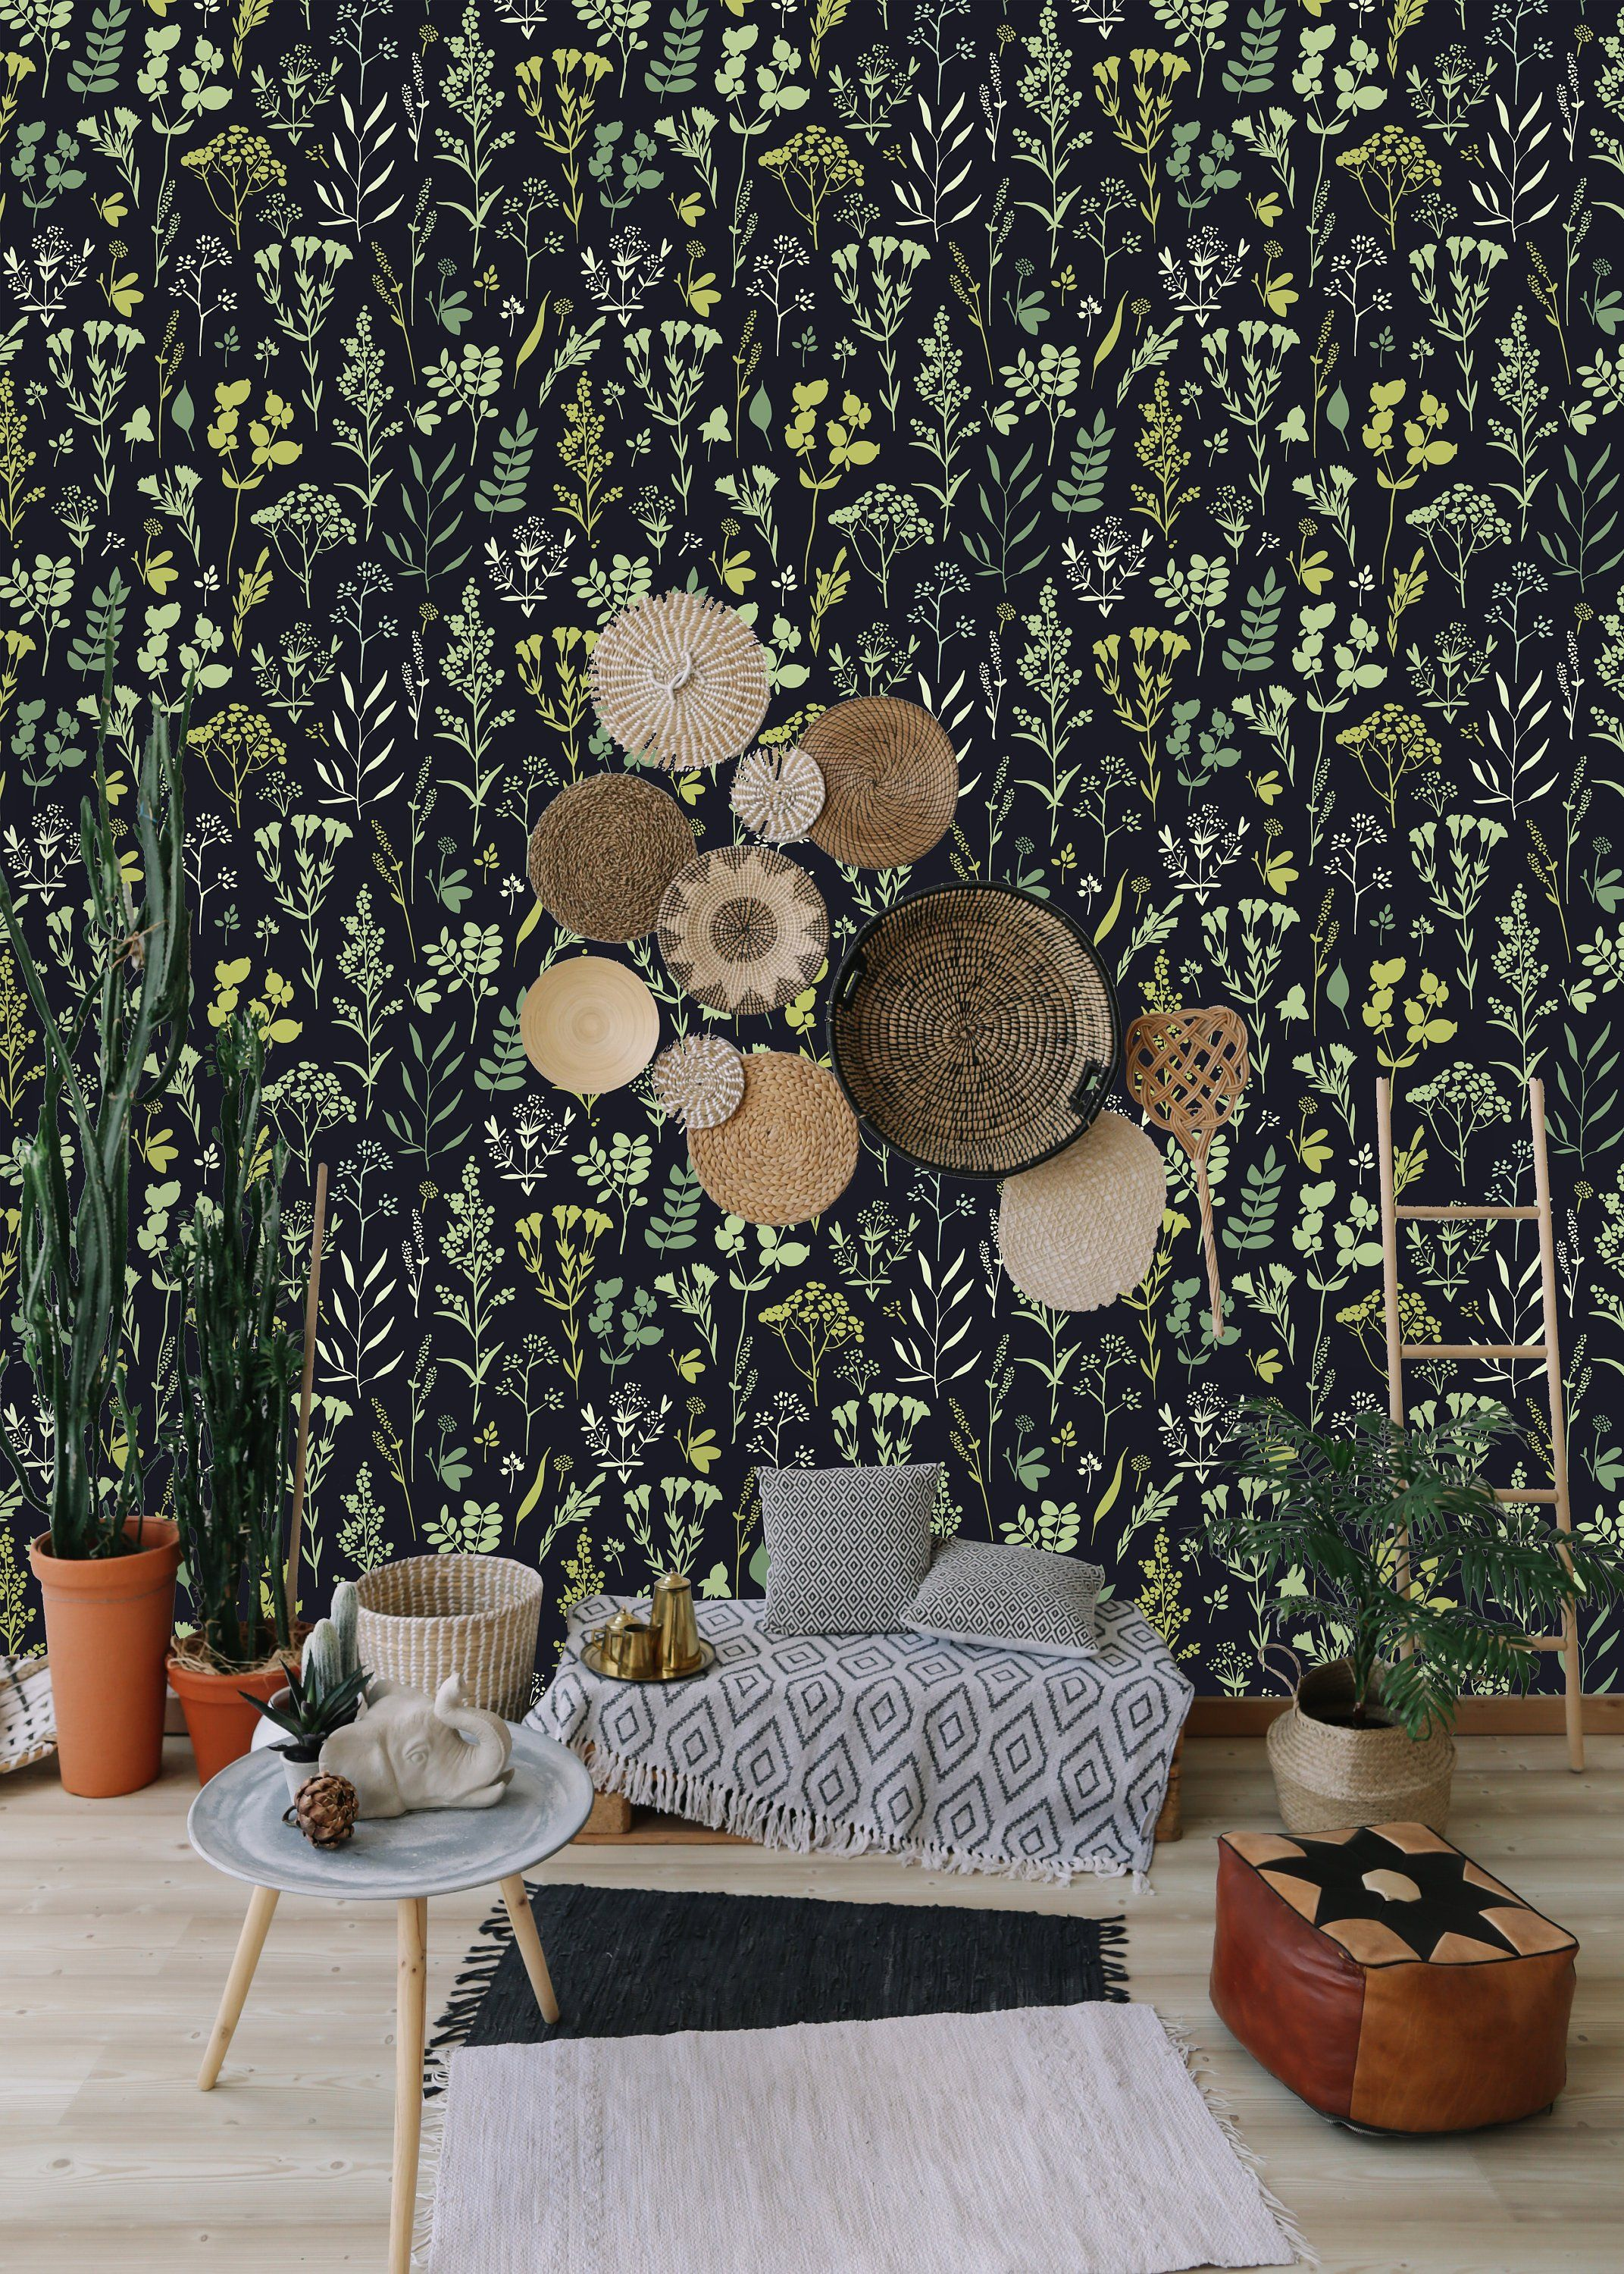 Herbs And Floral Motifs Removable Wallpaper Peel And Stick Wallpaper Wall Mural Self Adhesive Wallp Peel Stick Wallpaper Self Adhesive Wallpaper Wall Wallpaper